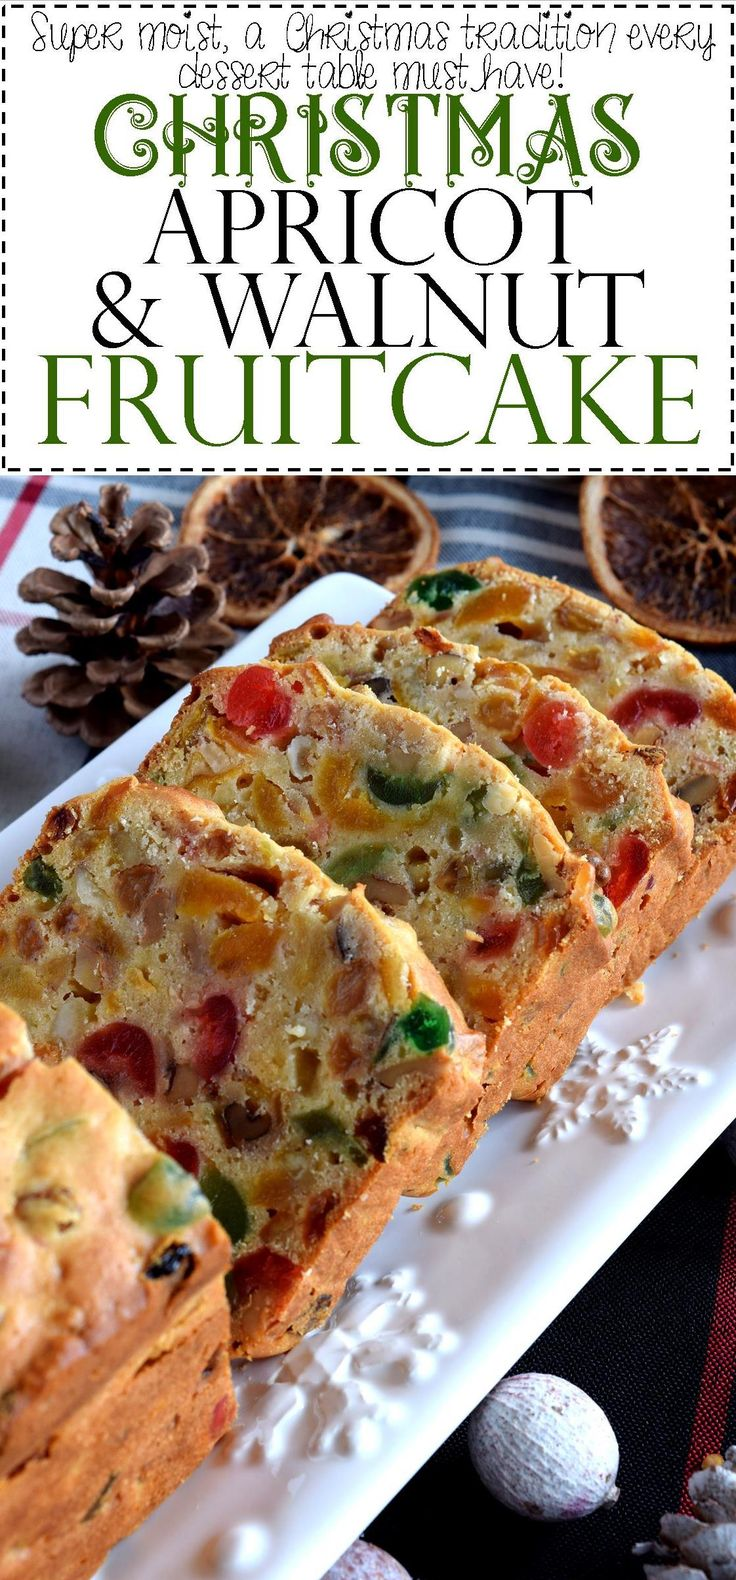 A common Christmastime tradition is fruitcake, and there's so many varieties to choose from. My version is free of alcohol and loaded with both candied and dried fruit, as well as walnuts. Christmas Apricot and Walnut Fruitcake just might be your…